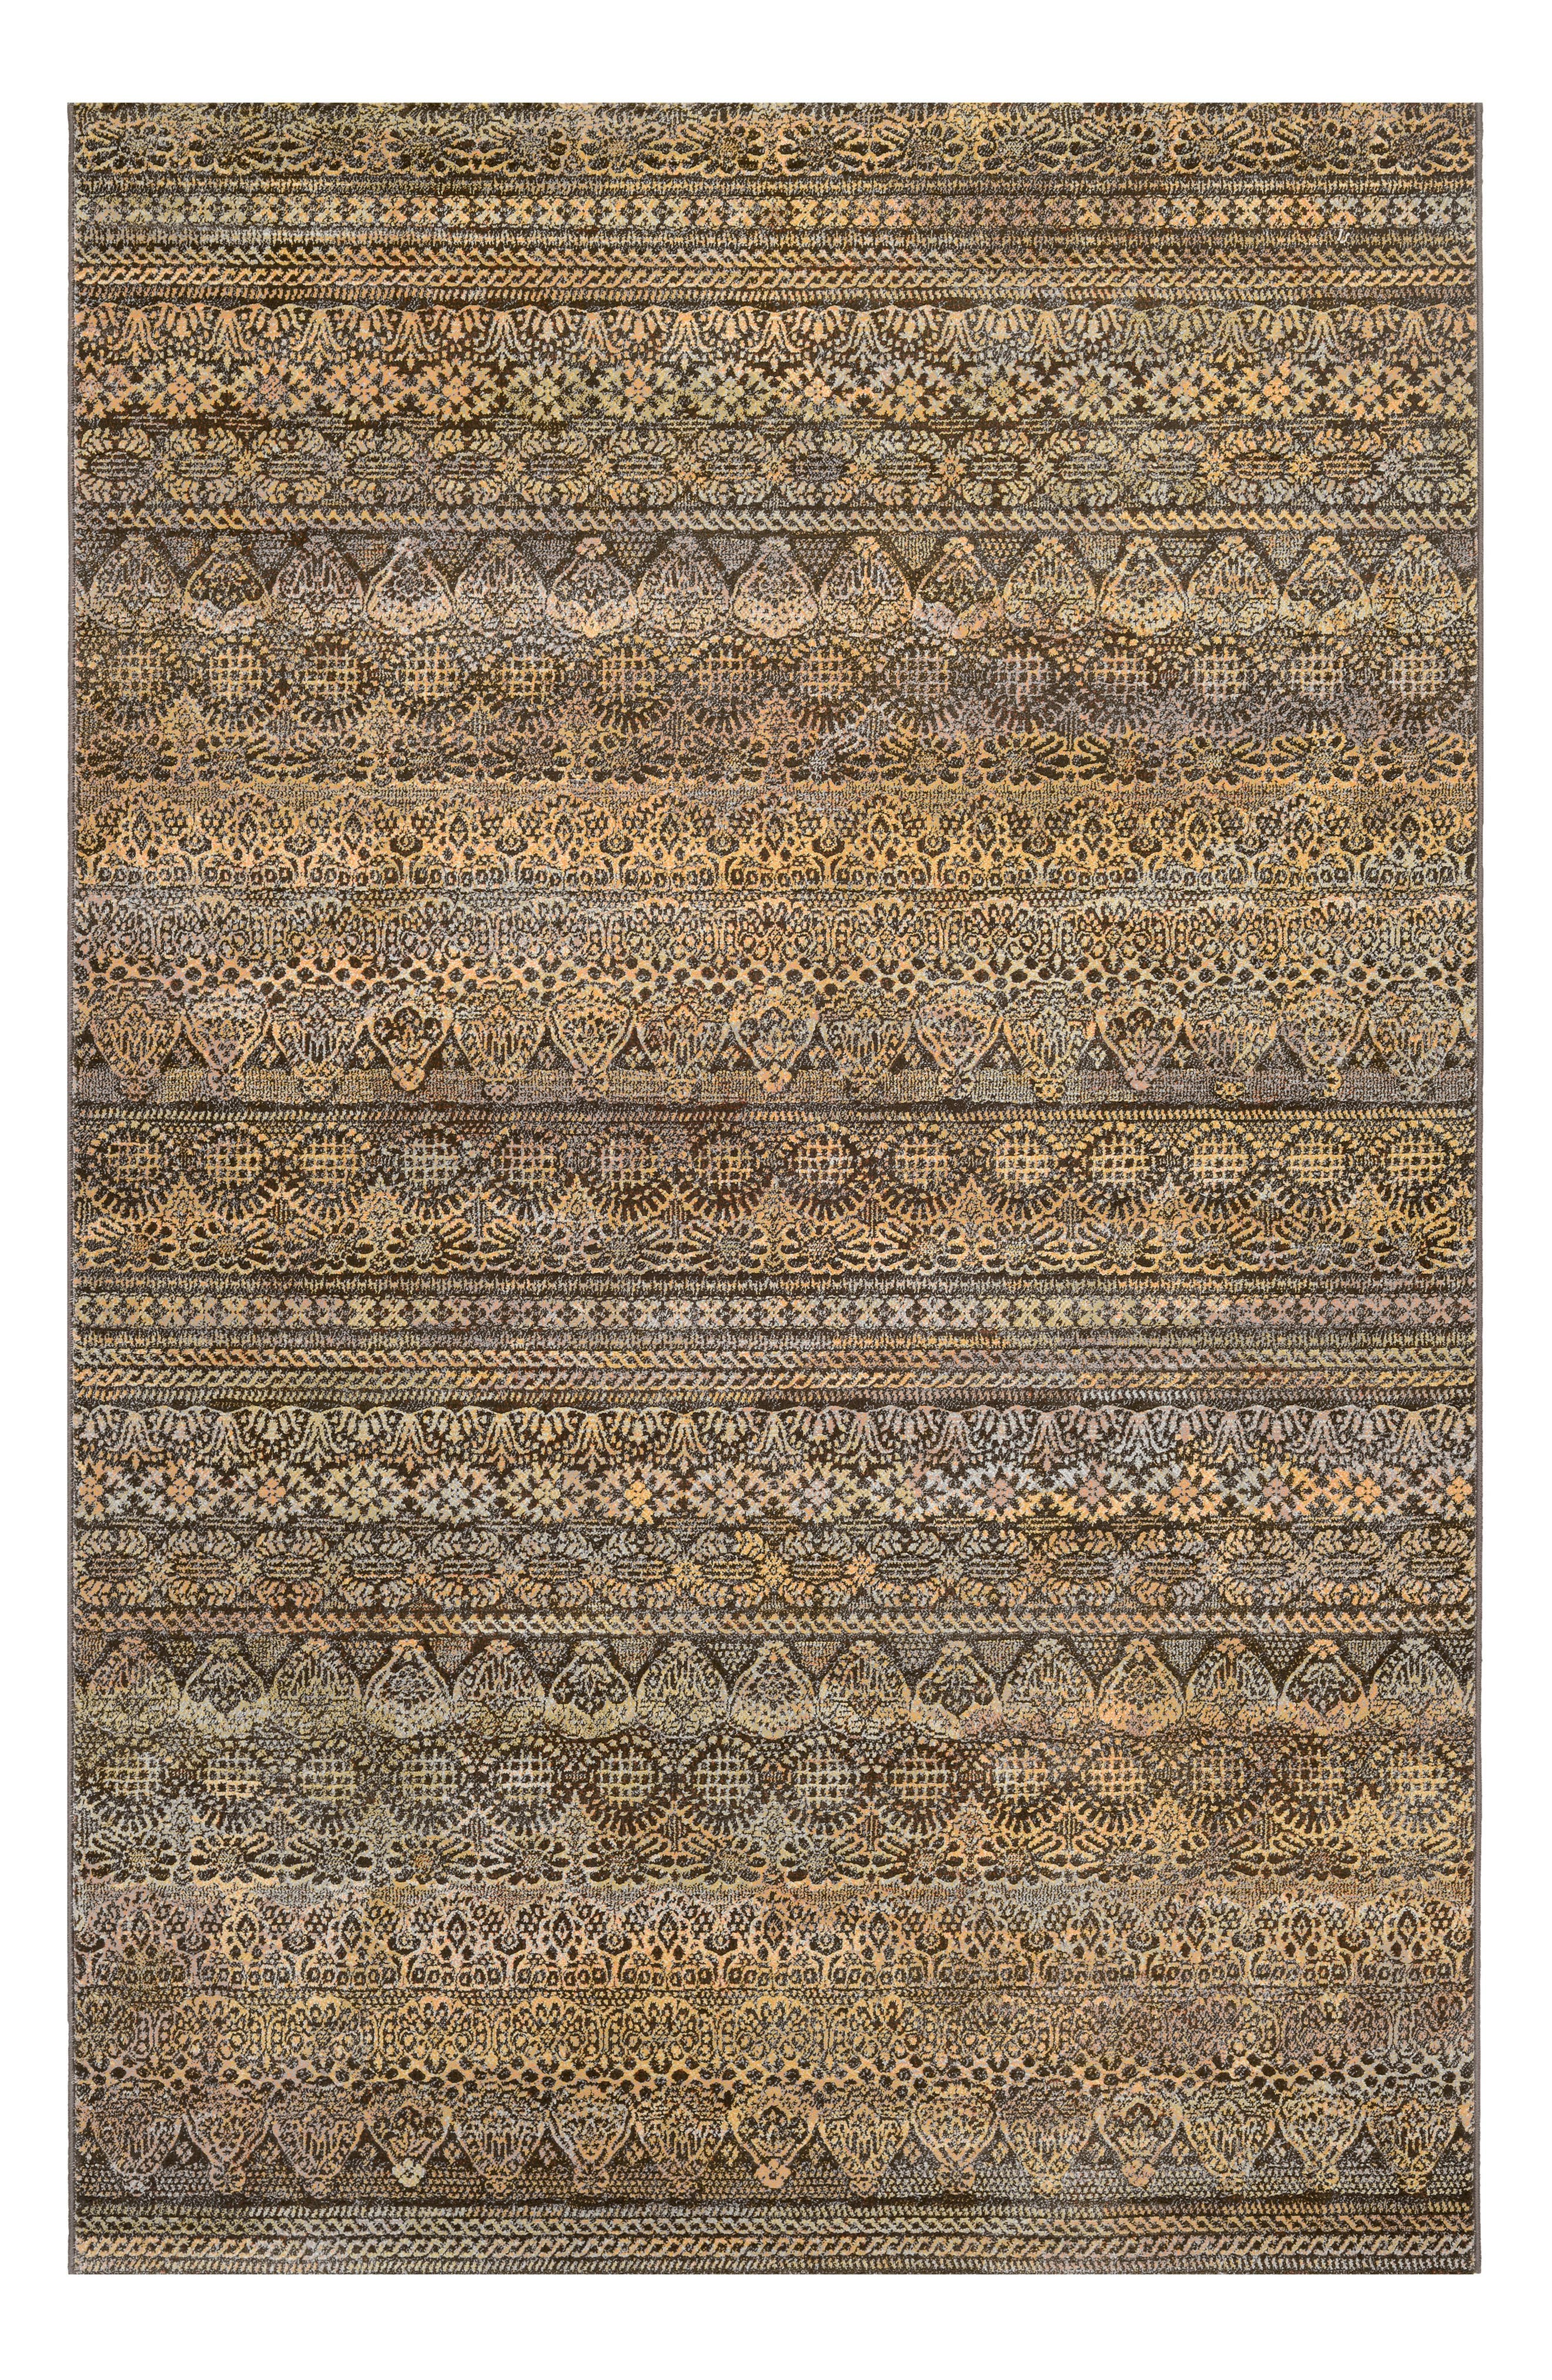 Easton Capella Area Rug,                         Main,                         color, BROWN/ MULTI